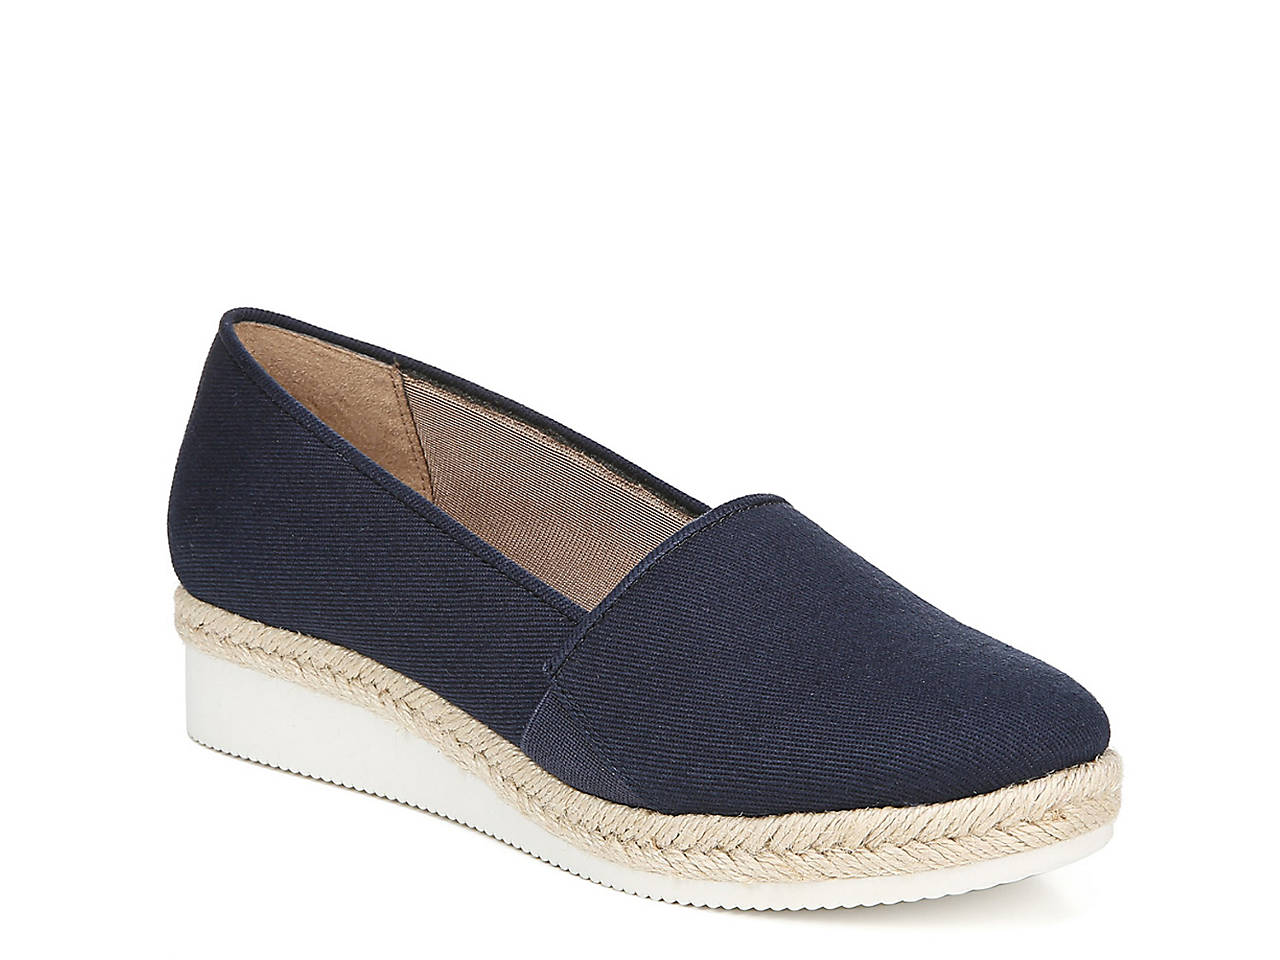 19ed0640723 LifeStride Colby 2 Espadrille Wedge Slip-On Women s Shoes